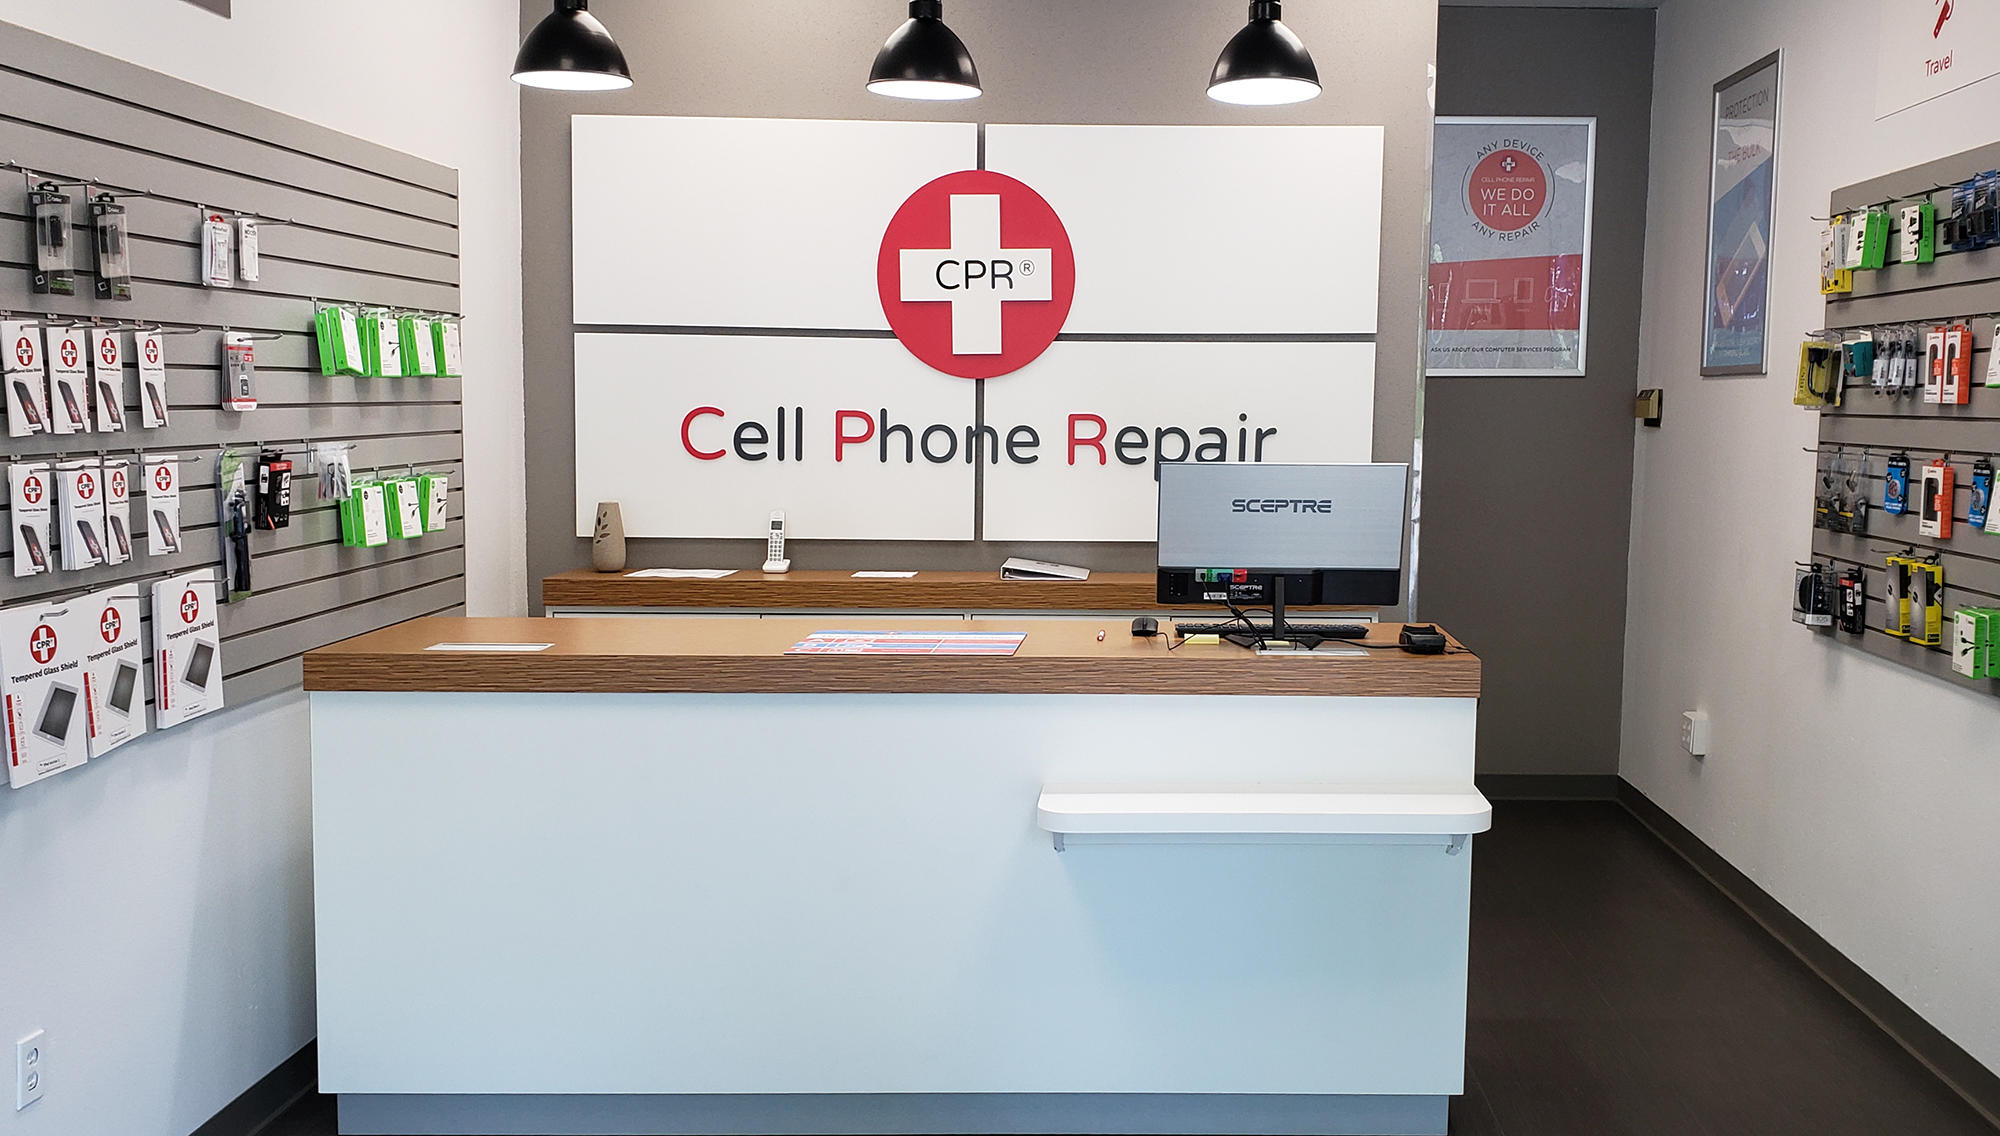 CPR Cell Phone Repair Gig Harbor image 1